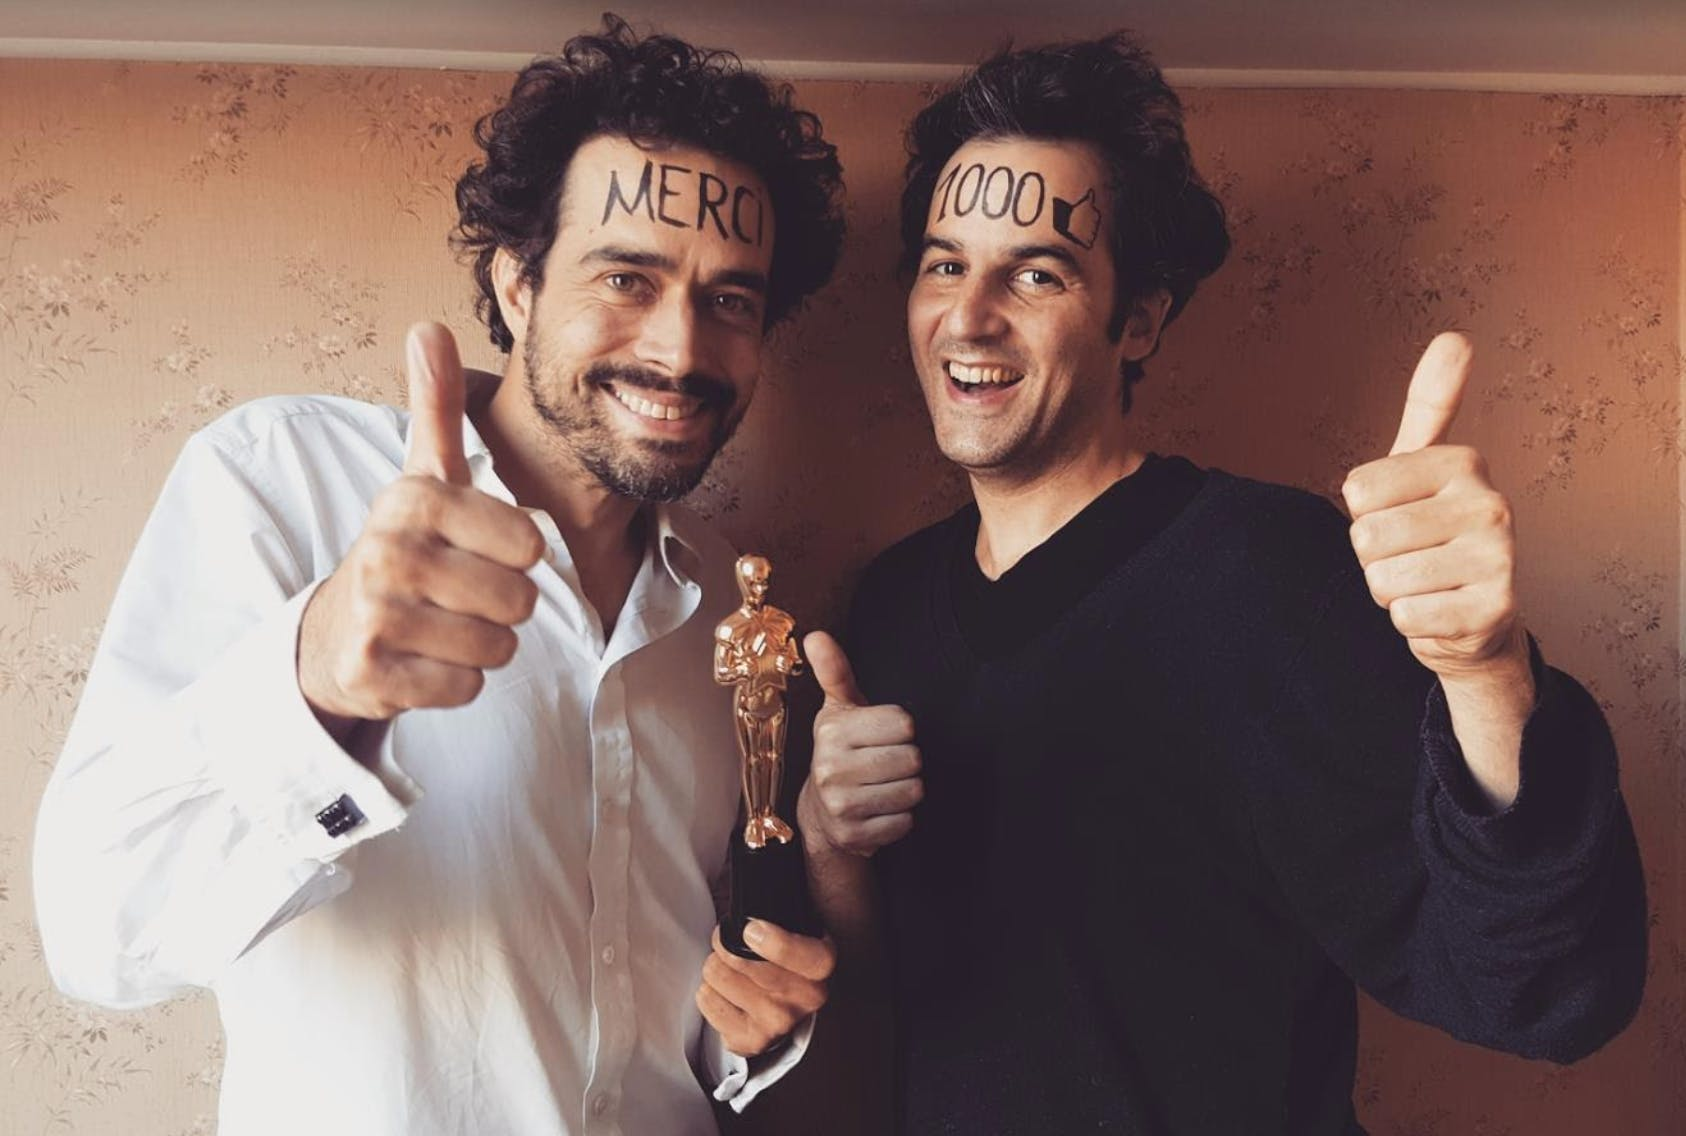 Here, 2 of our 3 co-founders are happy about our first 1000 Facebook likes. On the left: Stéphane Heliot. On the right: Emmanuel Freund. Good job Acher Kagan for escaping this embarrassing (but absolutely beautiful) picture.